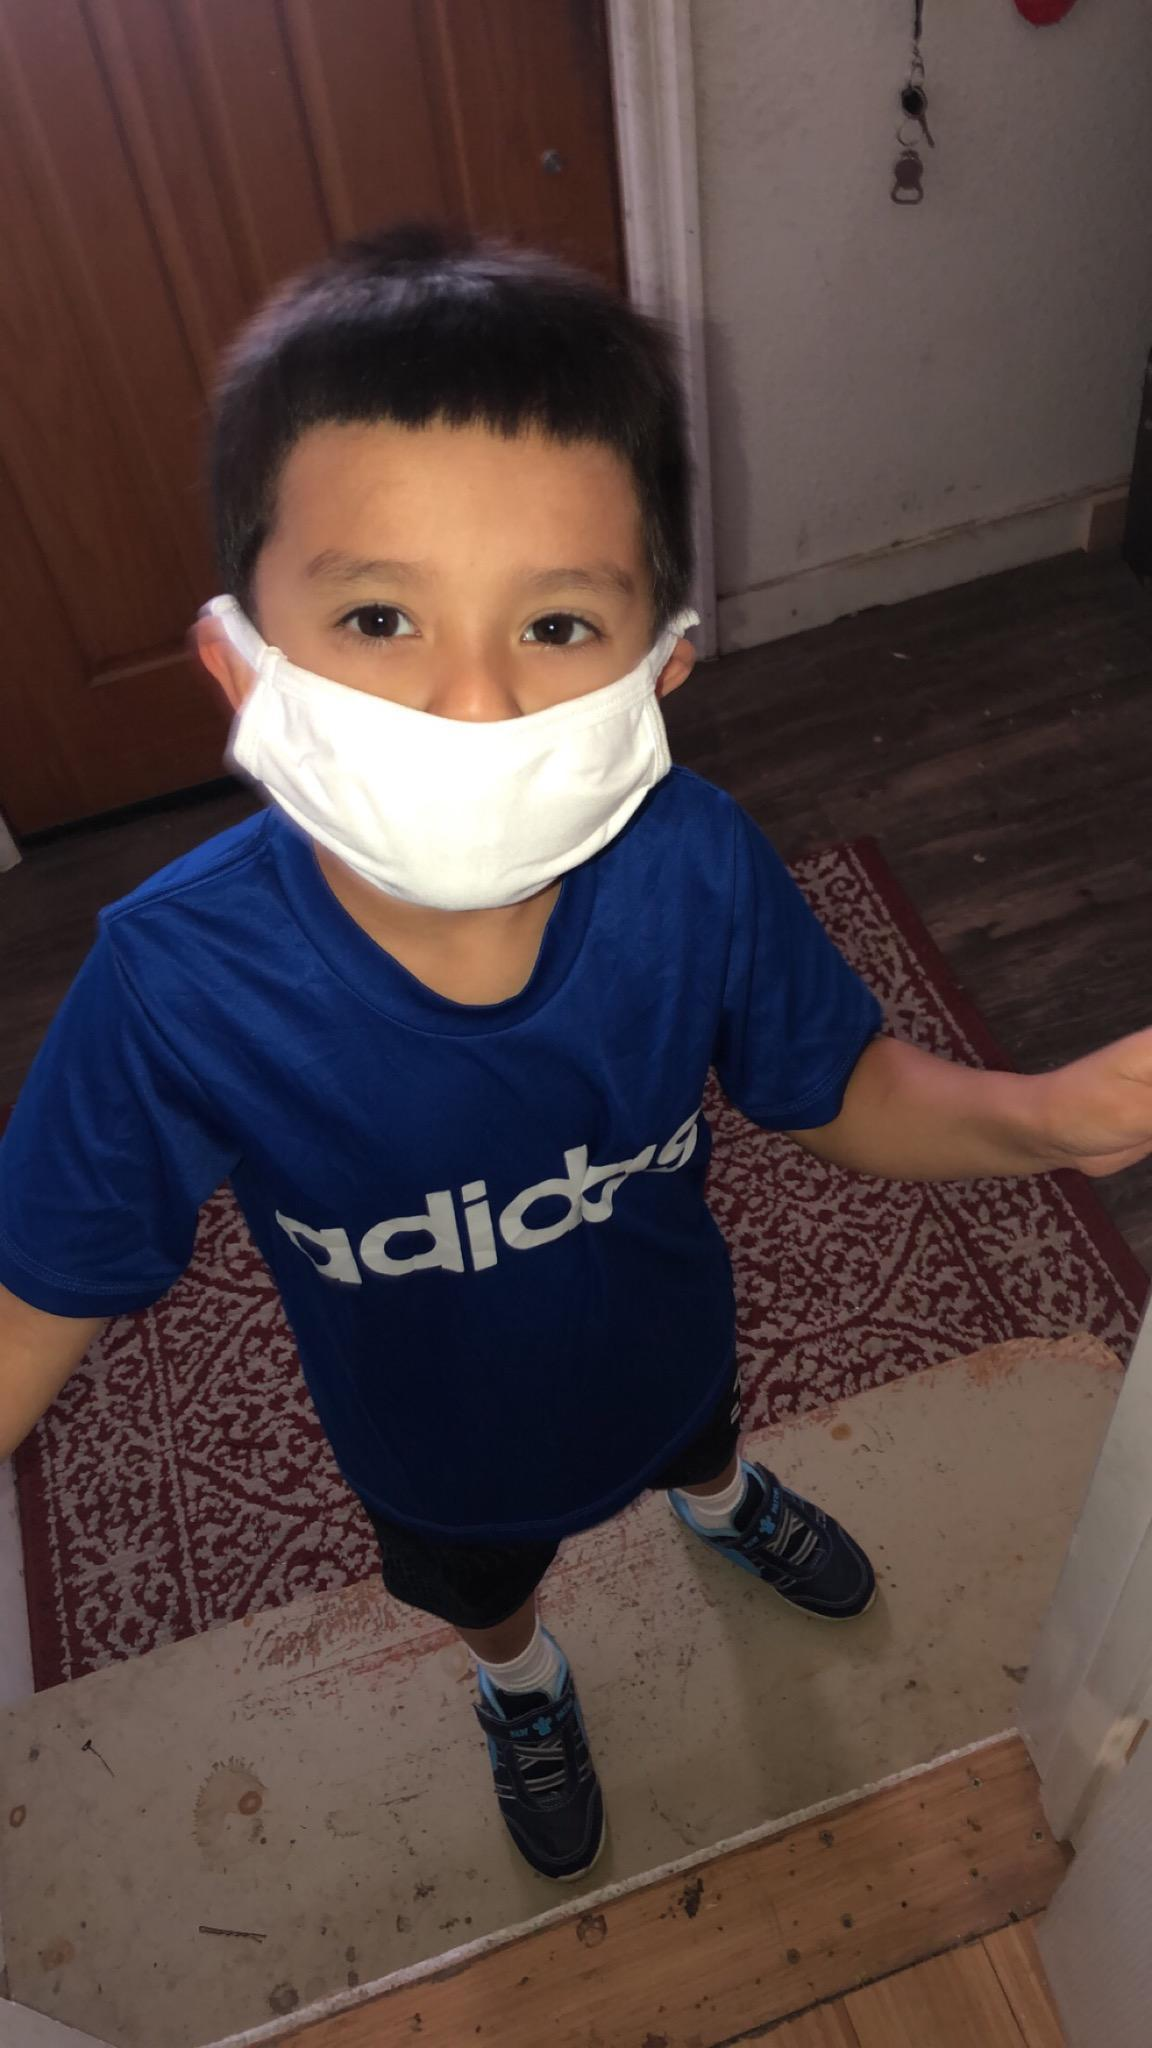 young boy wearing mask and posing for picture.